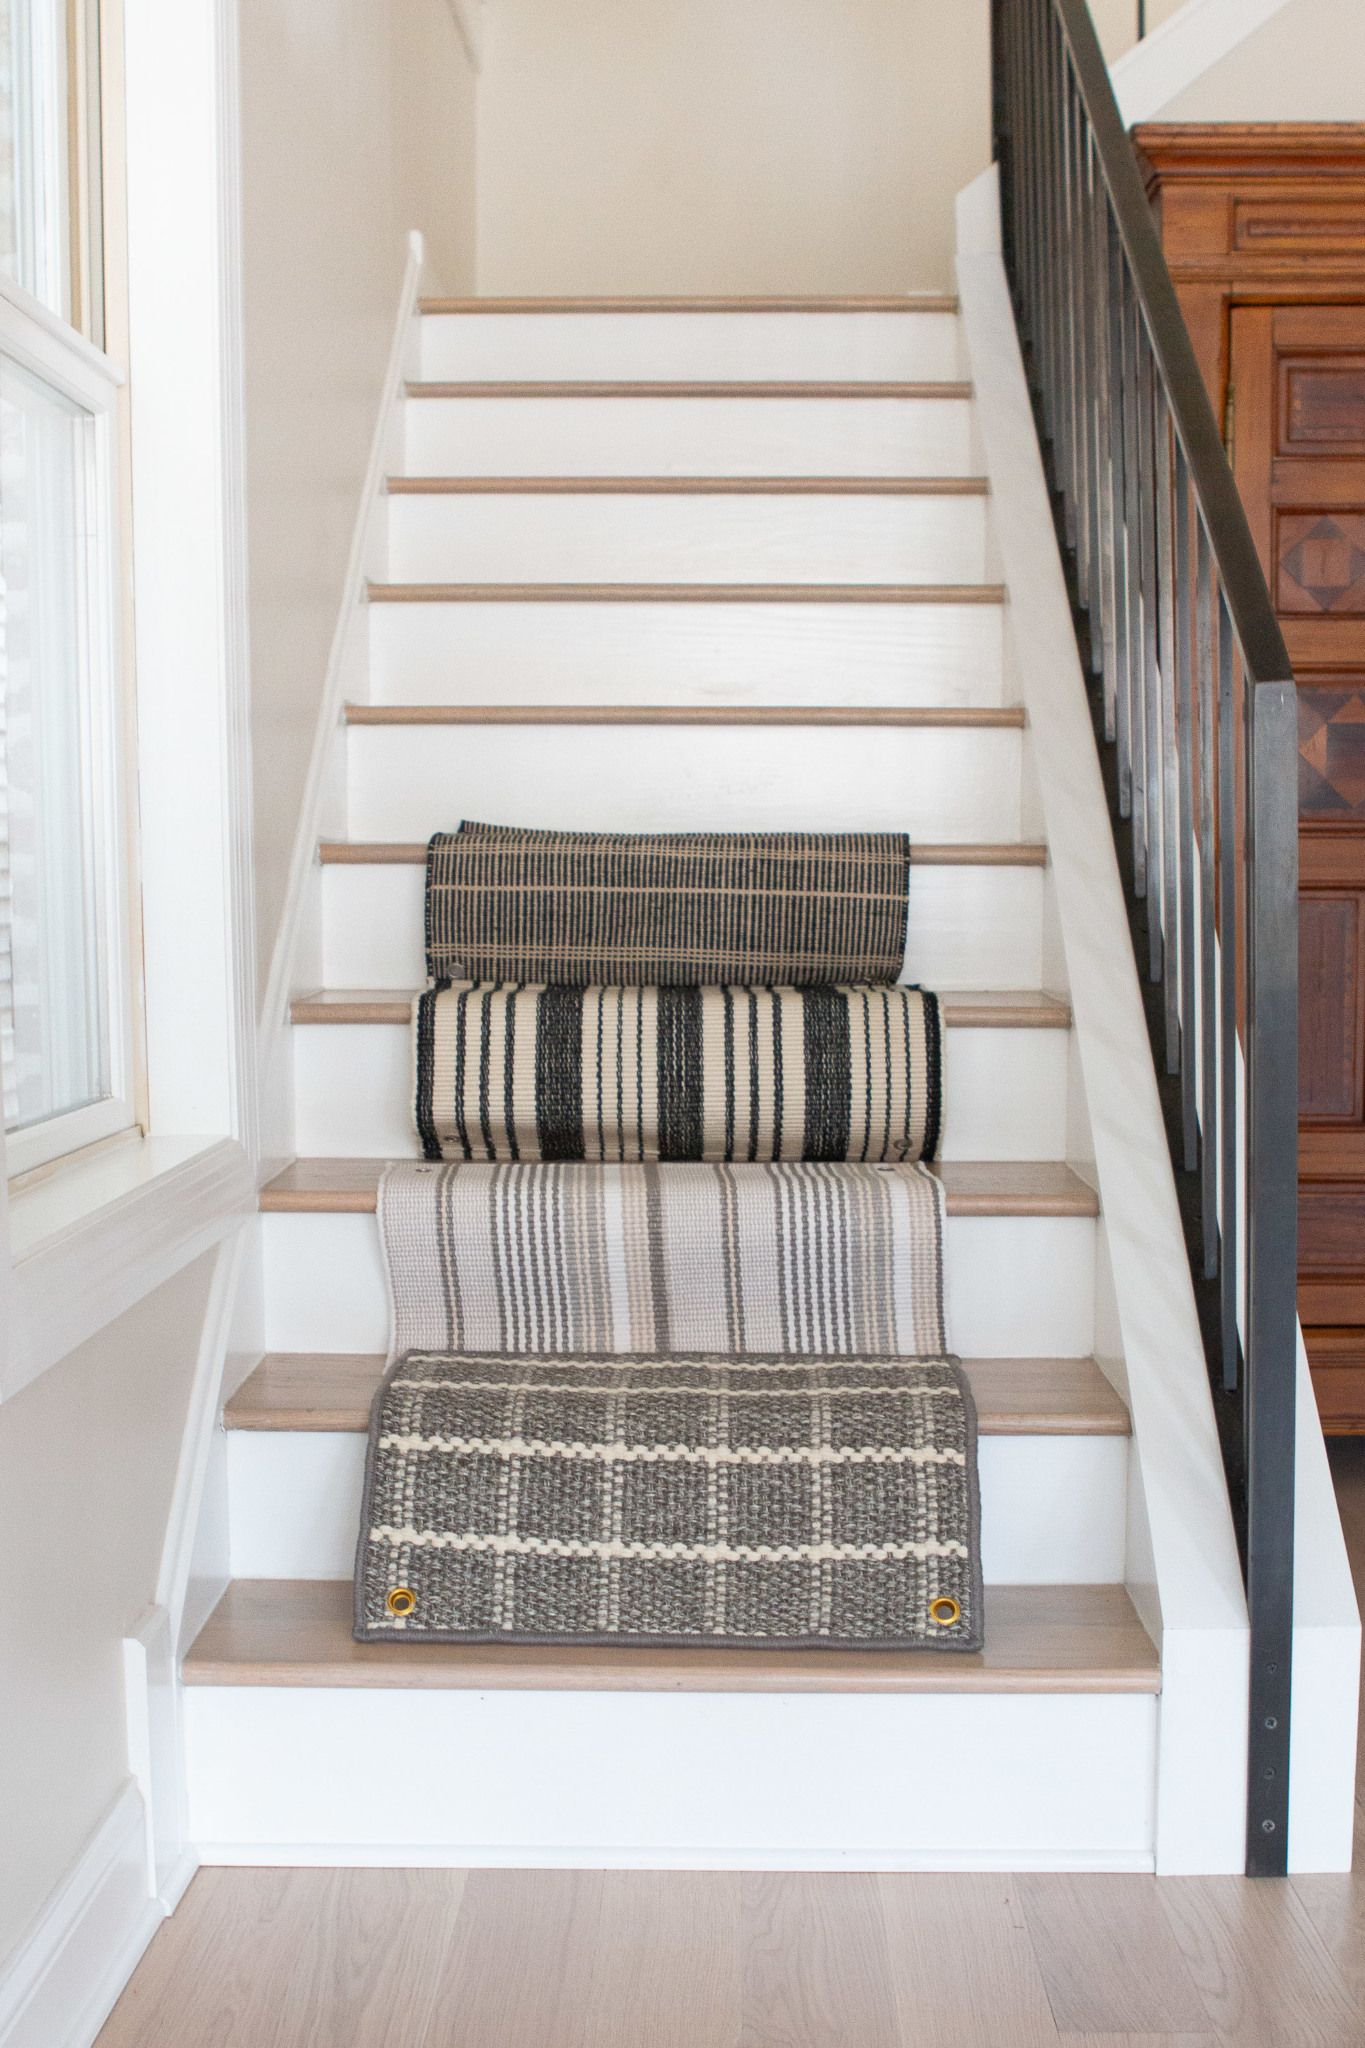 How To Install A Stair Runner In 2020 Stair Runner Stairs Diy   Runners On Stairs With Landings   Roger Oates   French Tuck   Annie Selke   Before And After   Runners Up